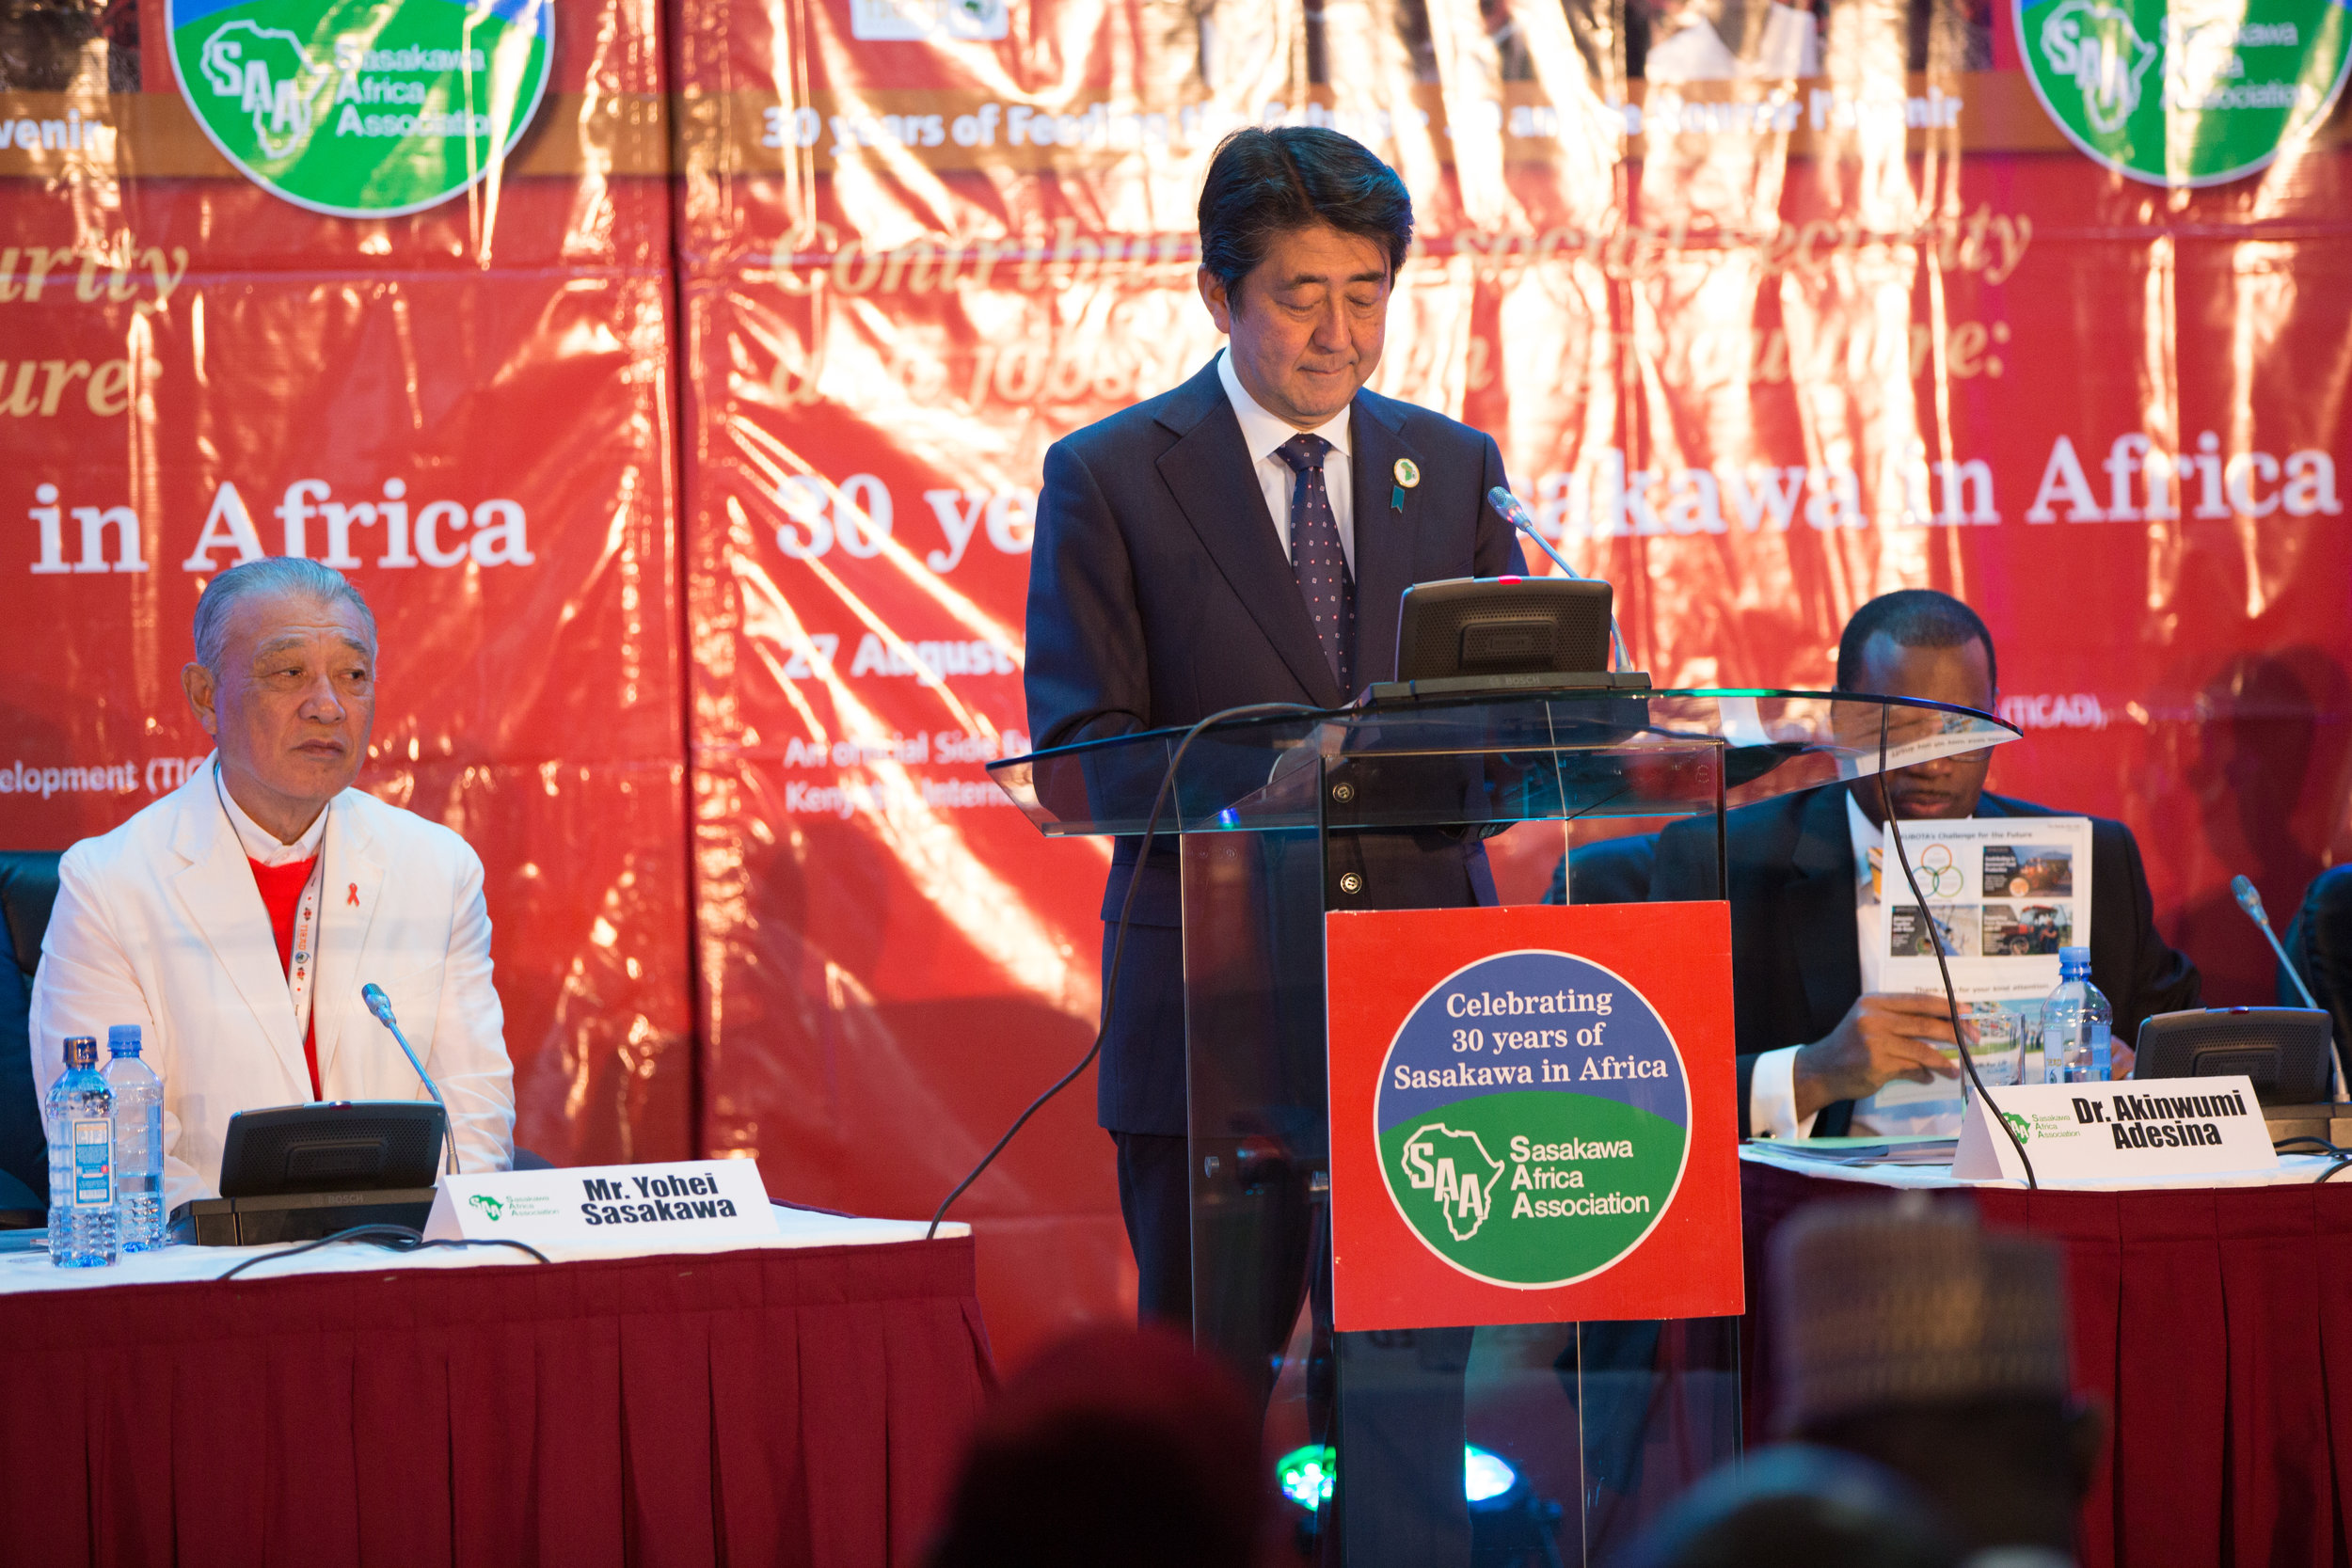 The Prime Minister of Japan, HE Mr Shinzō Abe, addresses our symposium at TICAD VI